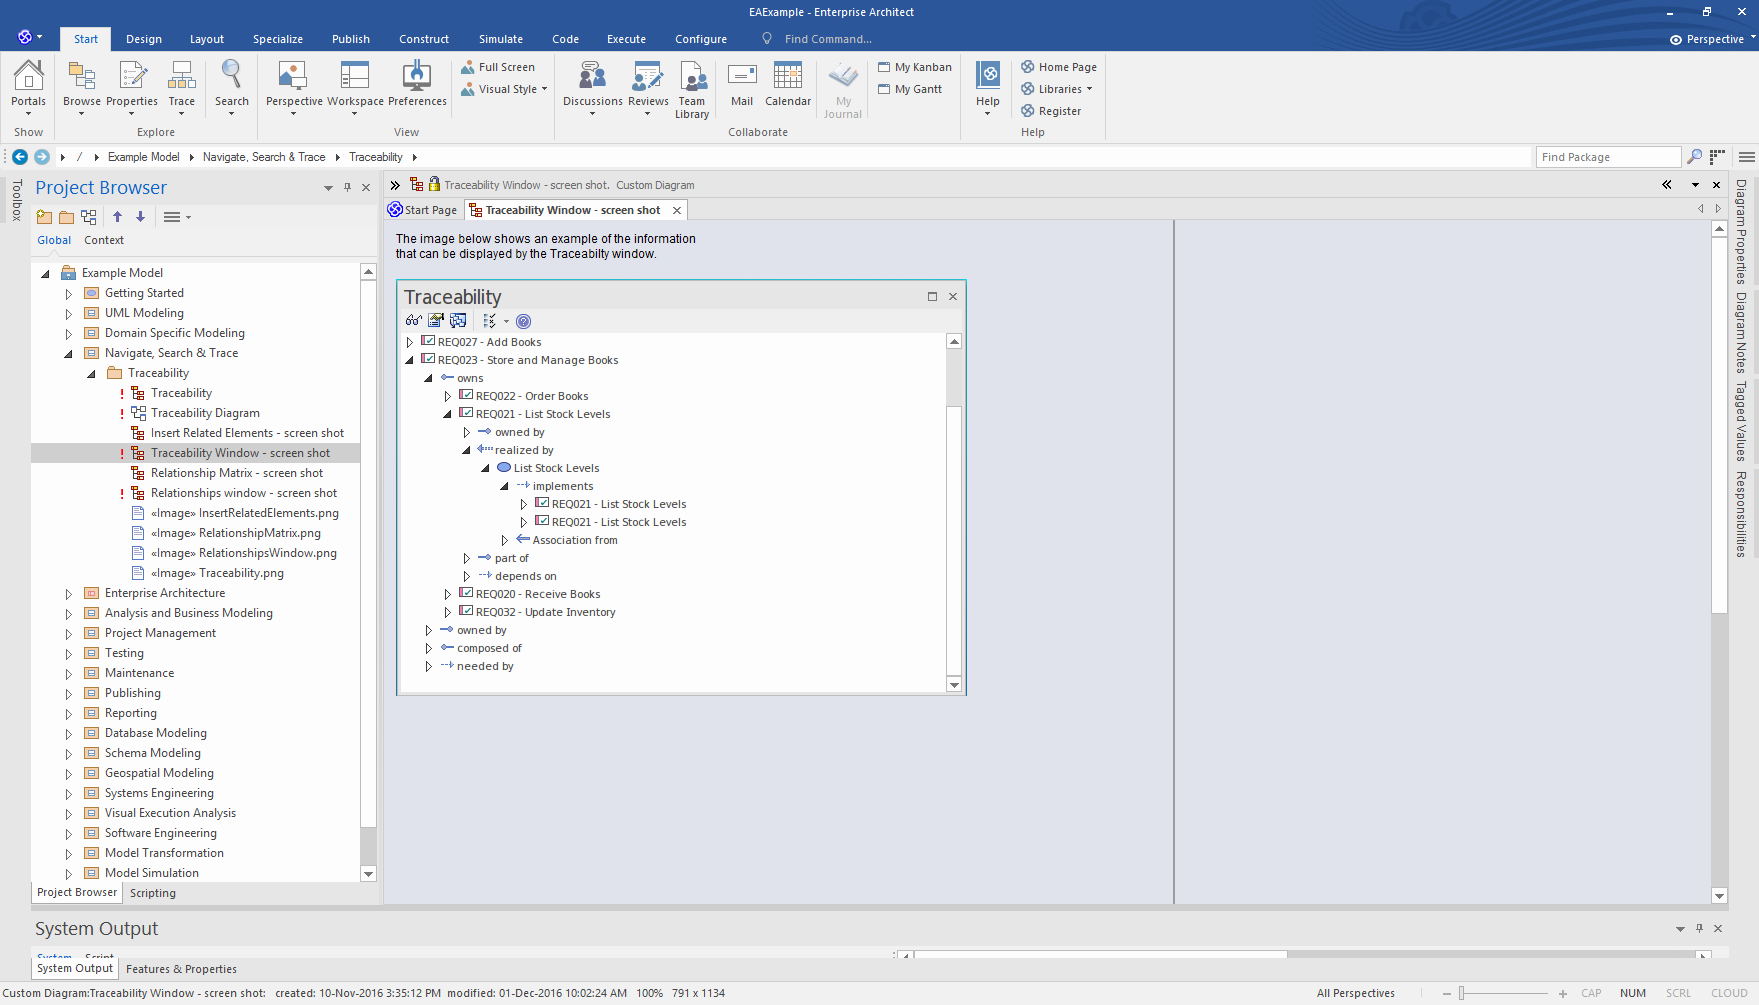 Enterprise Architect Professional Edition: Traceability Window